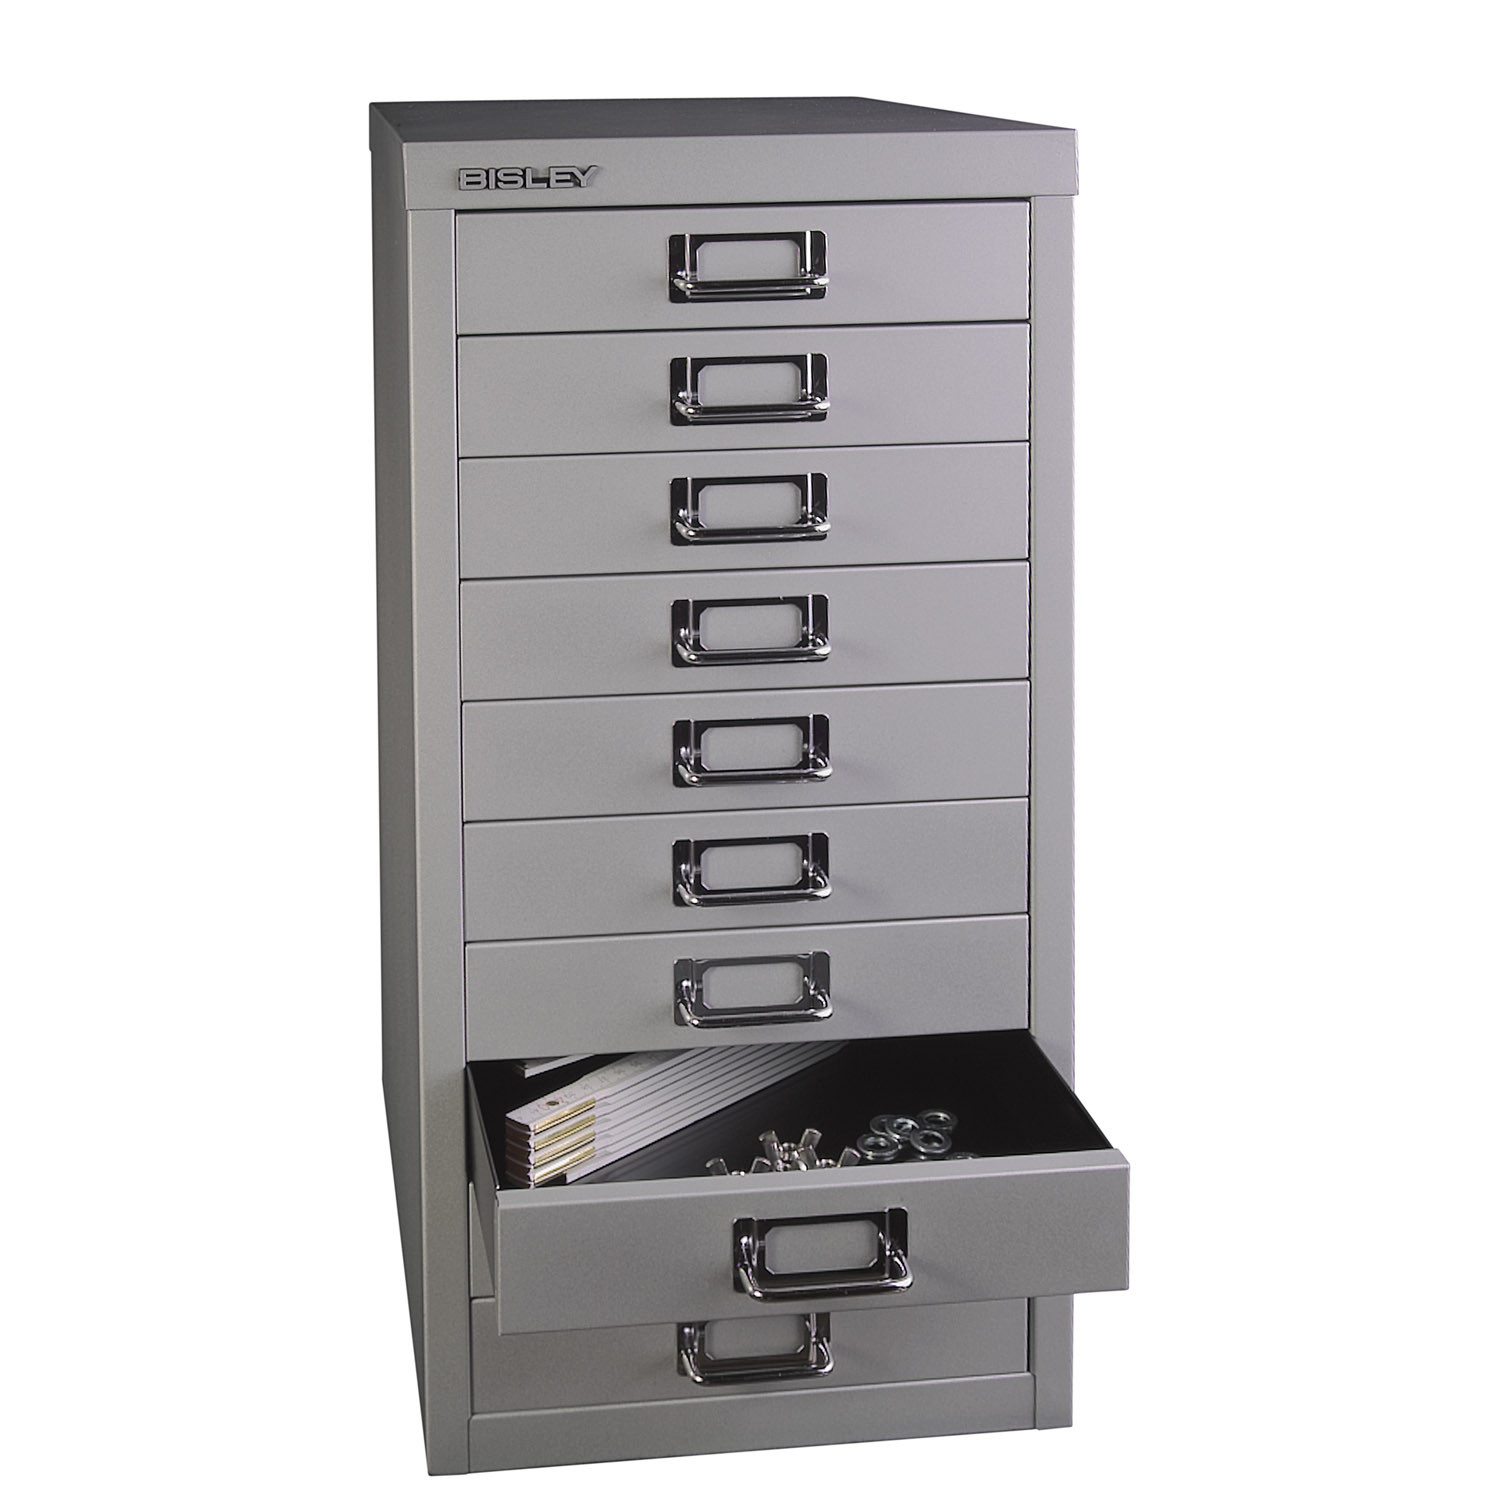 29 Series H2910NL MultiDrawer Unit